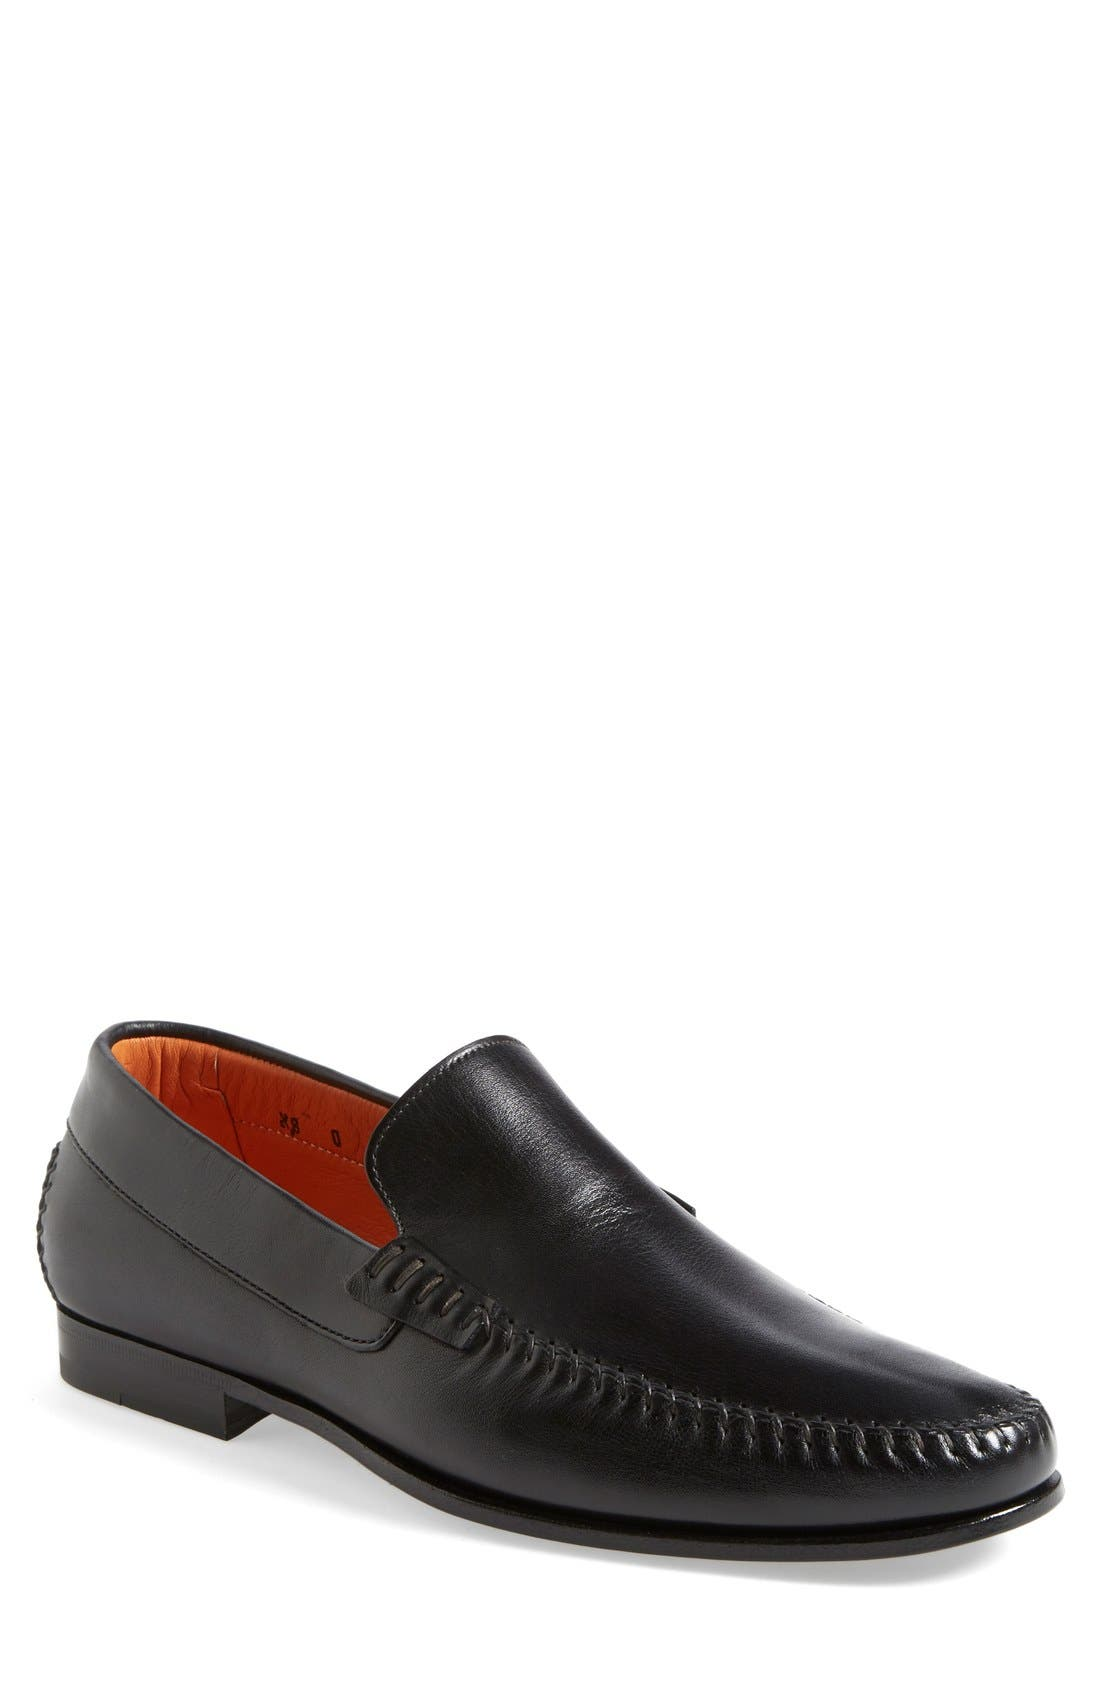 'Auburn' Venetian Loafer,                             Main thumbnail 1, color,